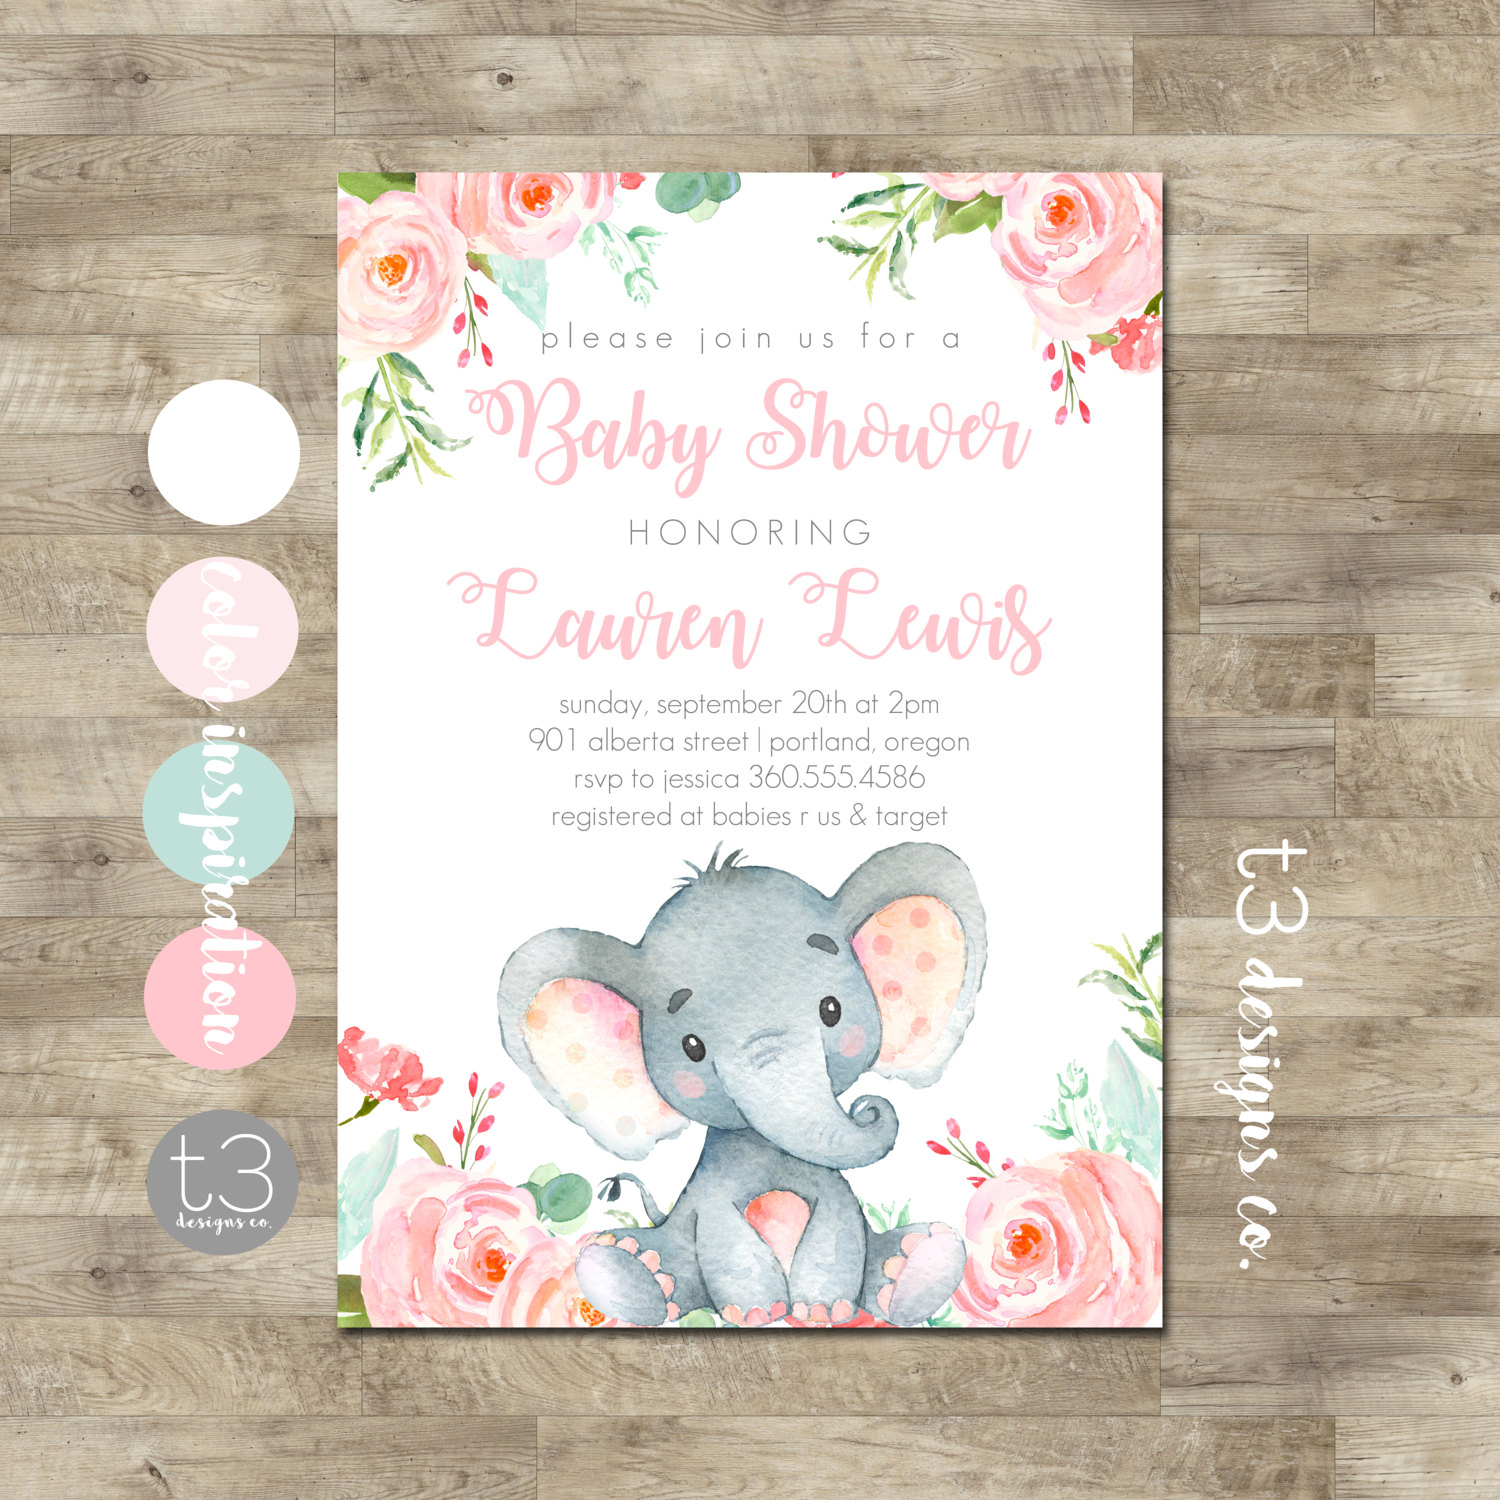 Full Size of Baby Shower:inspirational Elephant Baby Shower Invitations Photo Concepts Elephant Baby Shower Invitations Elephant Baby Shower Invitation Safari Baby Shower 128270zoom